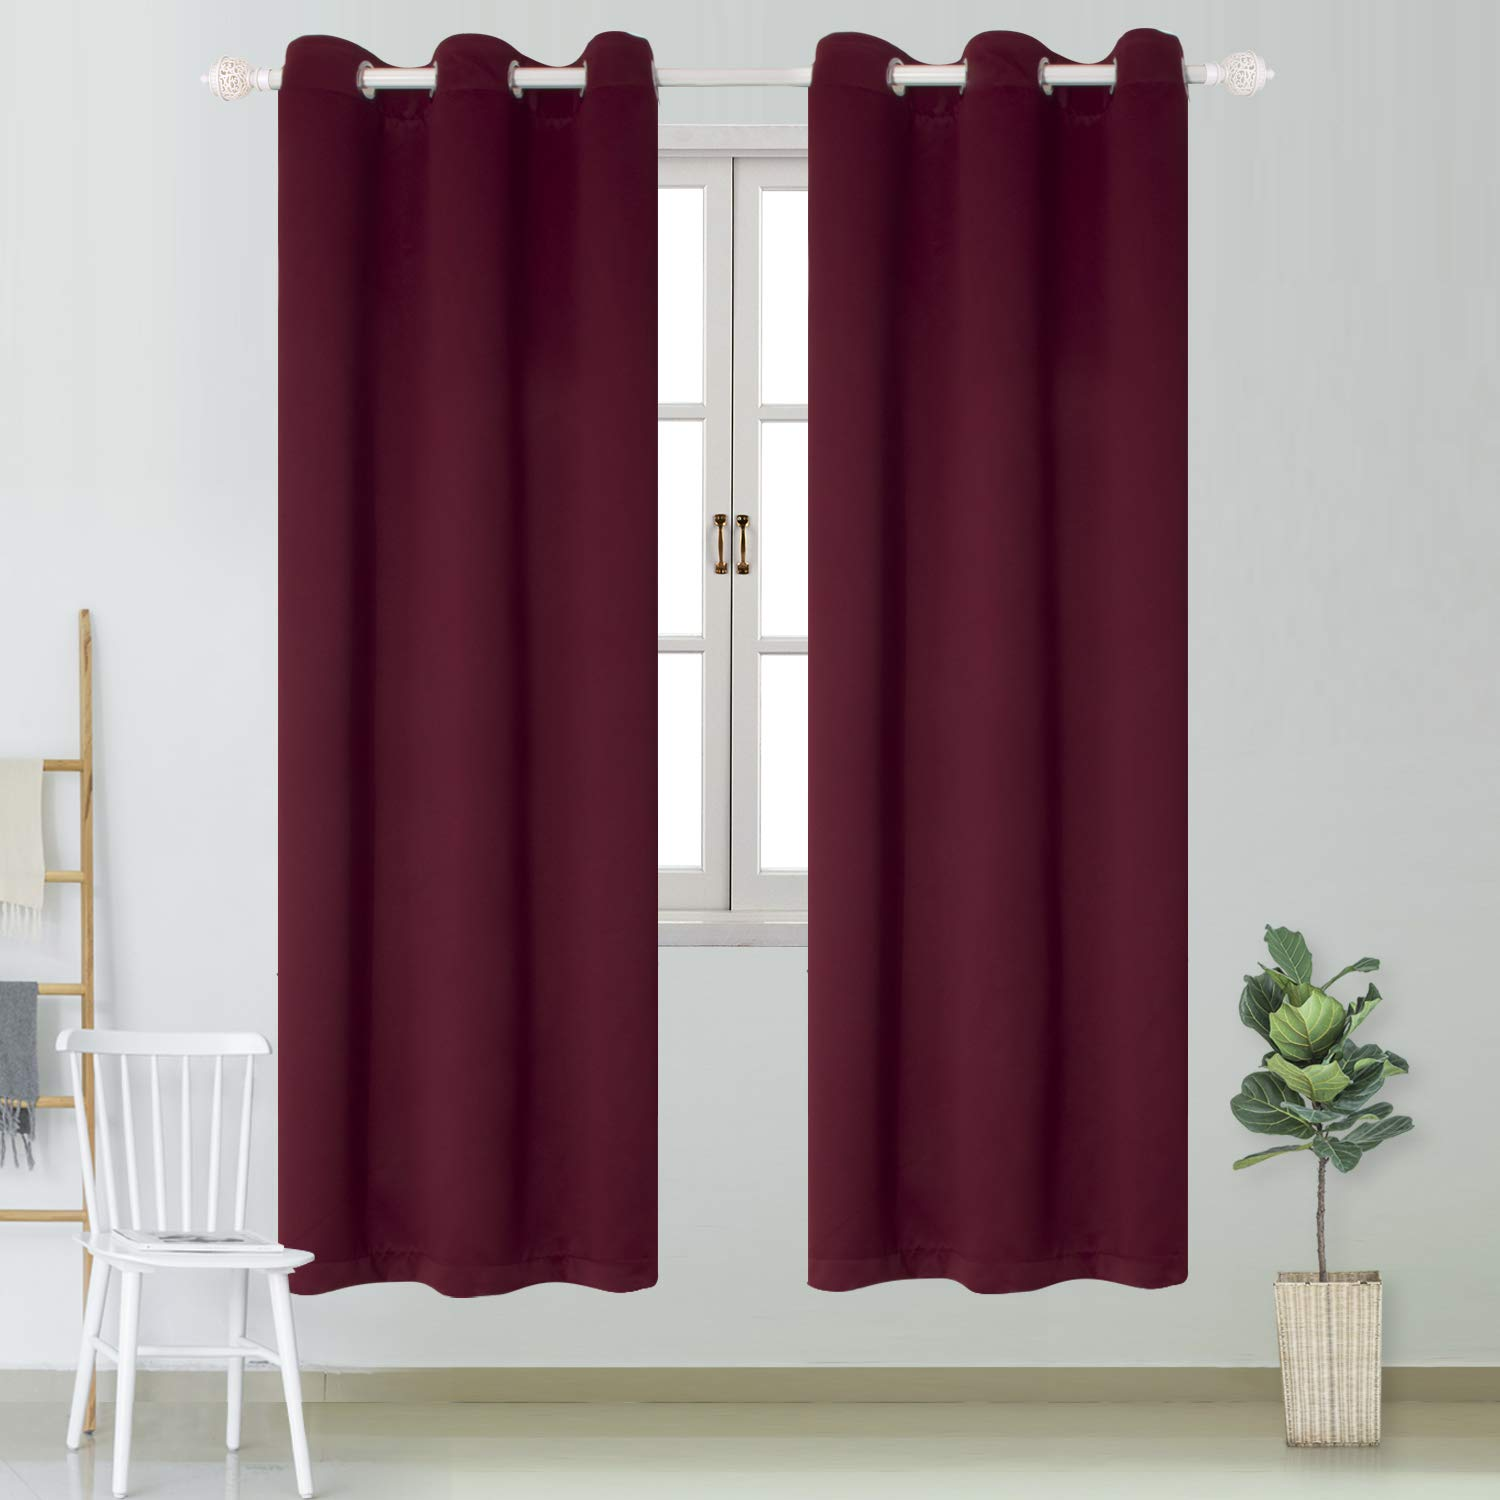 BGment Blackout Curtains Room Darkening Thermal Insulated Window Drapes for Living Room, Bedroom, Kids Room, with Metal Grommets Top, 2 Panels - Beige, 42 Wx63 L 42 Wx63 L